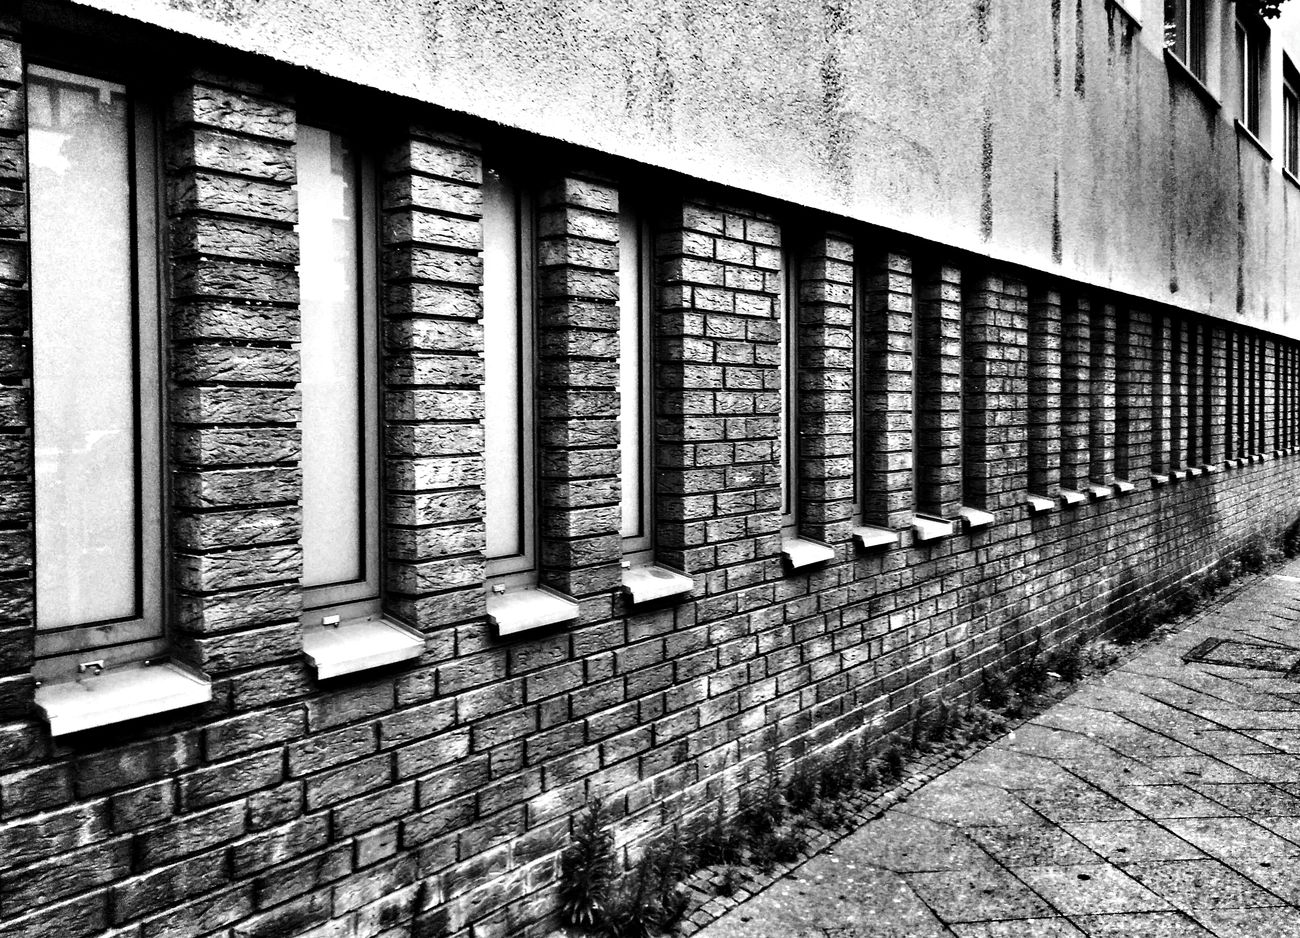 Blackandwhite Repetitive House Facade